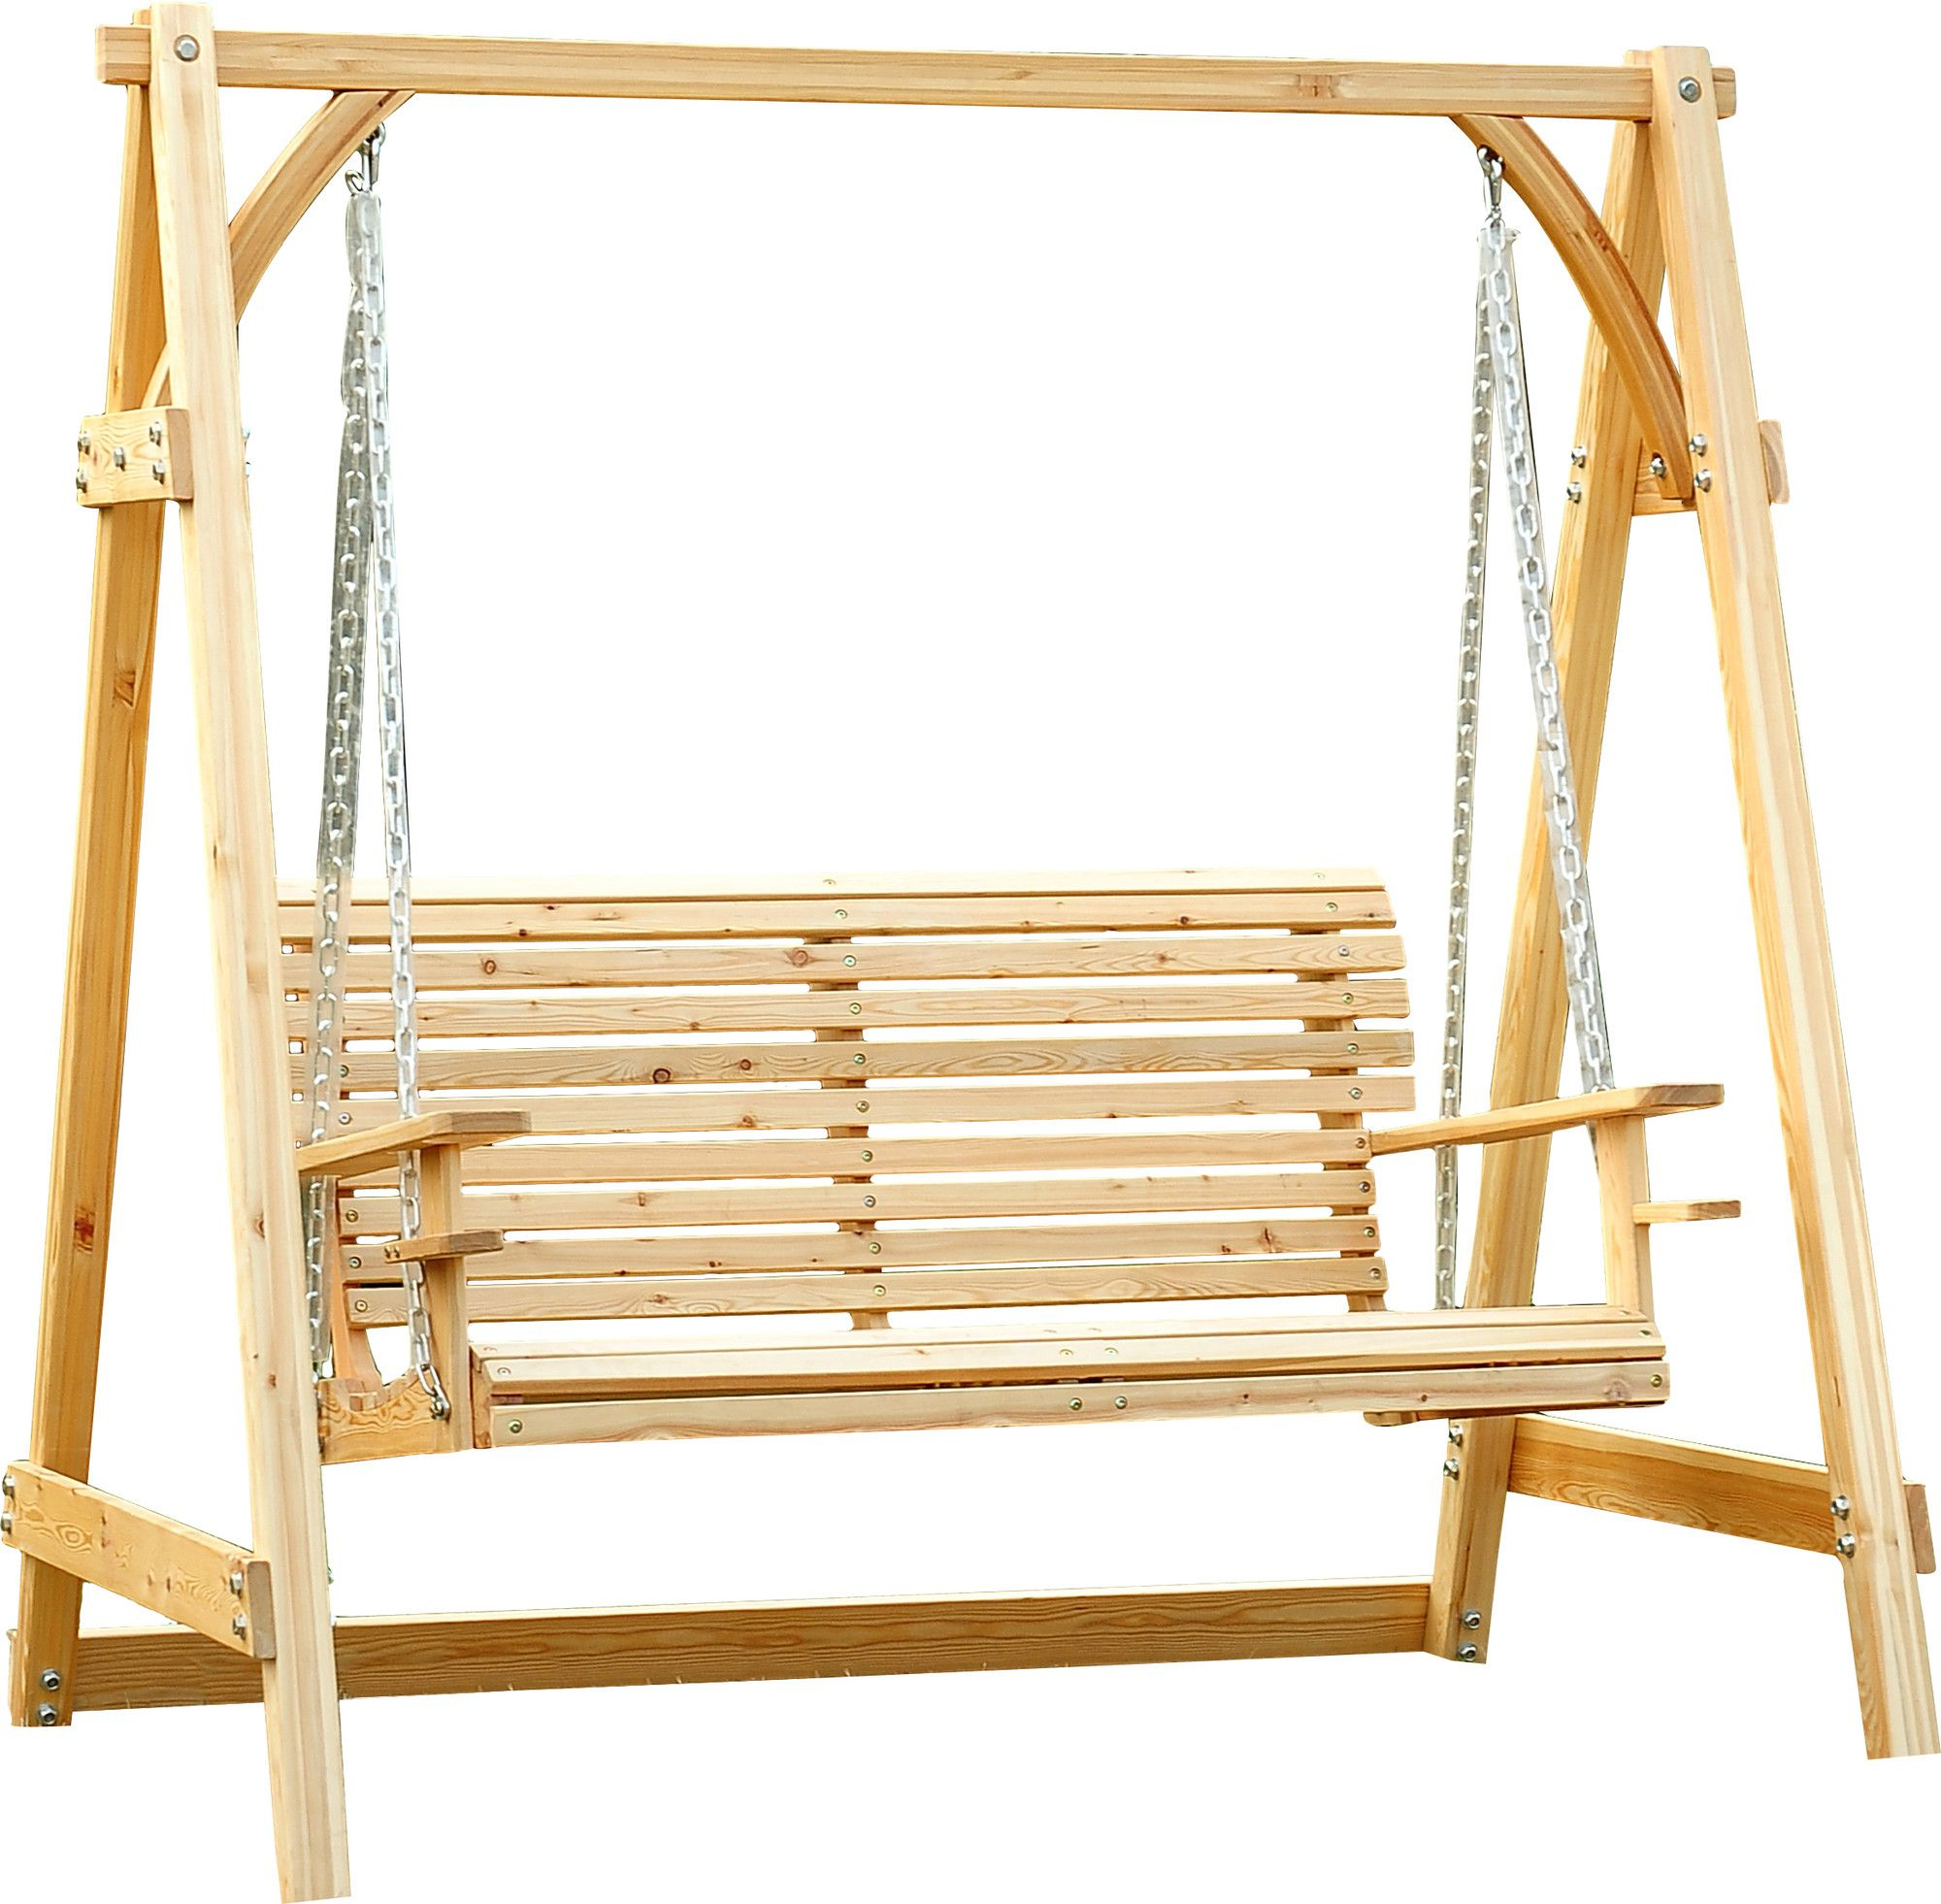 Hardwood Hanging Porch Swings With Stand Regarding Popular Arianna Hardwood Hanging Porch Swing With Stand (View 3 of 25)